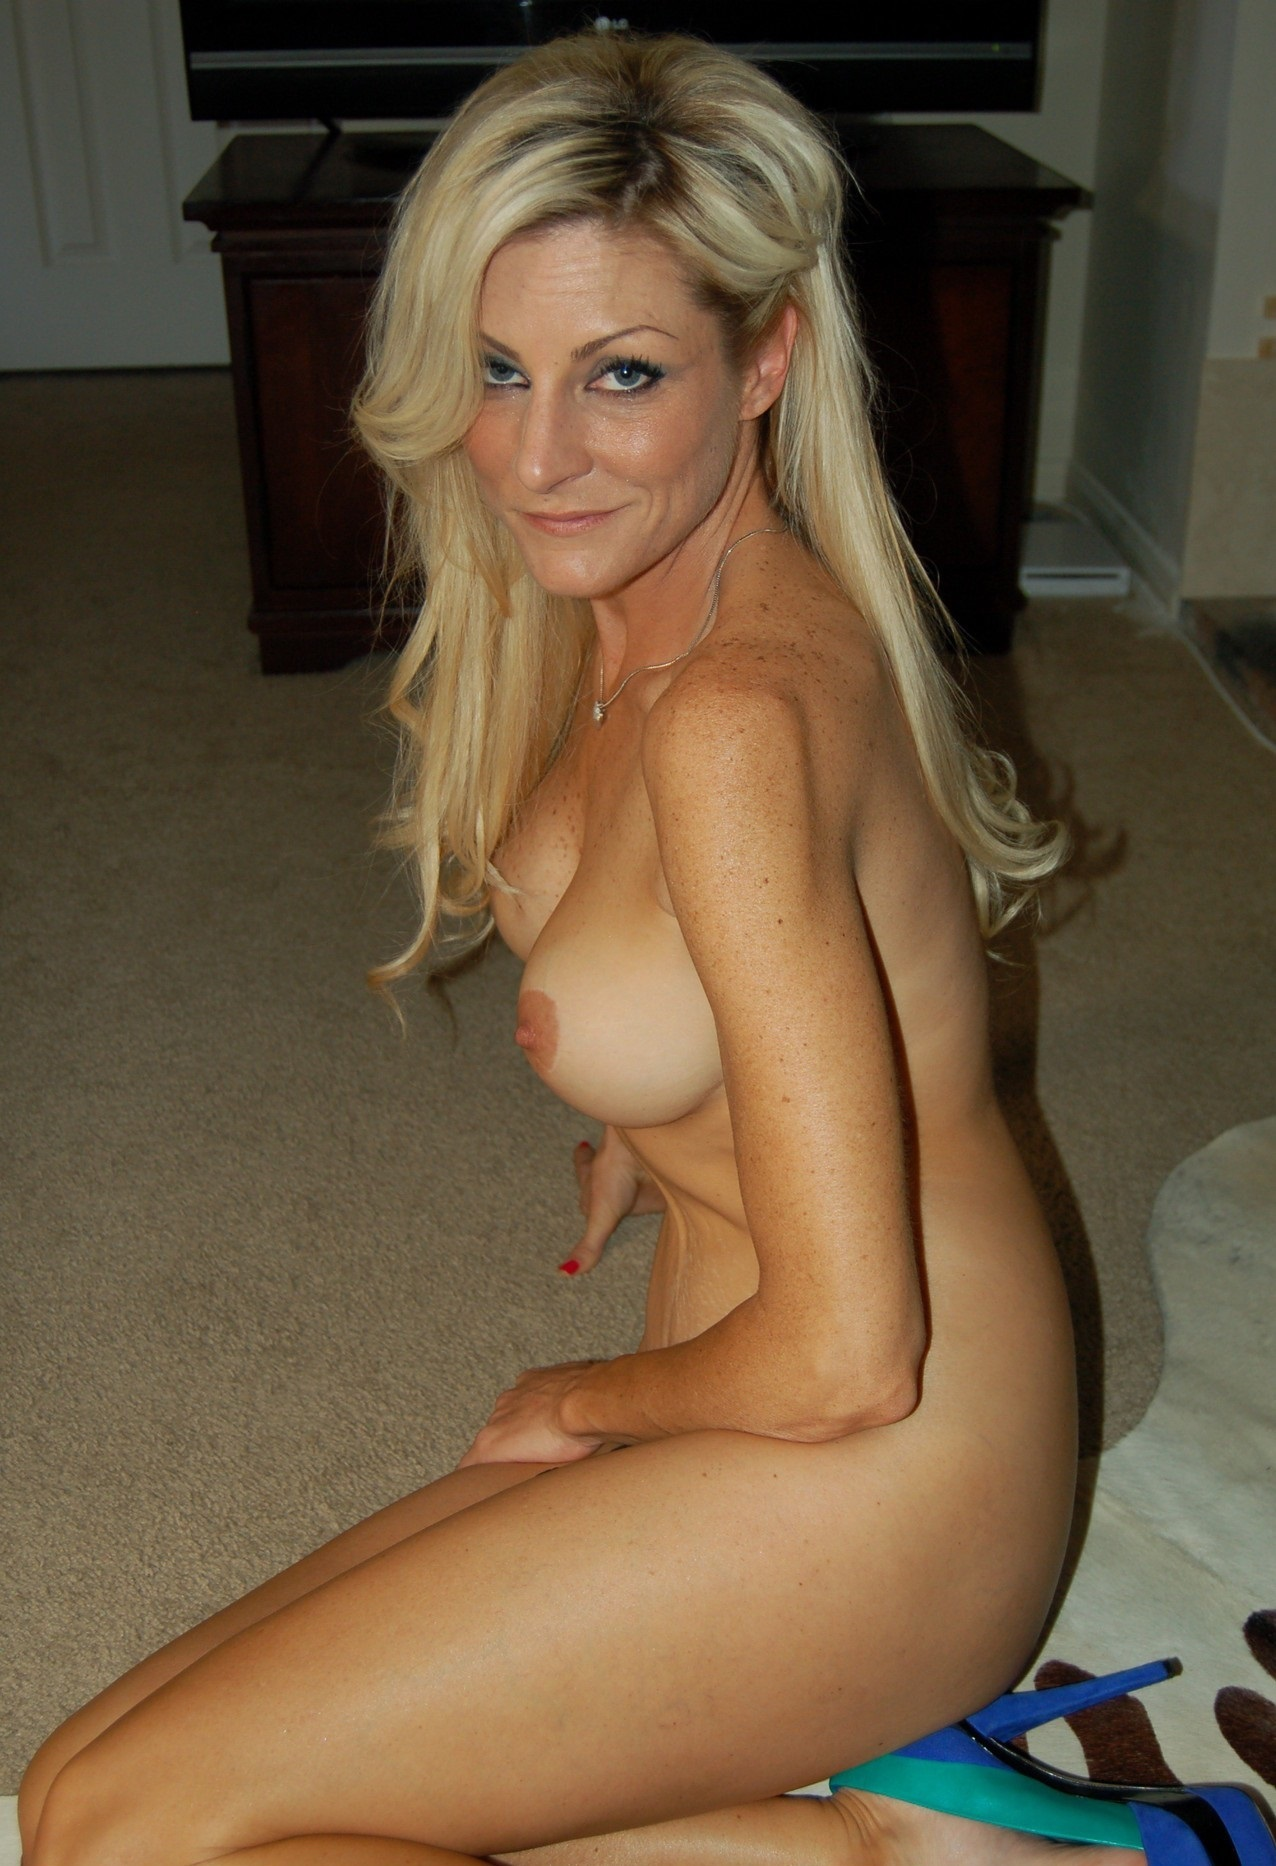 sexy-cougars-toplless-nude-pictures-of-girls-with-no-legs